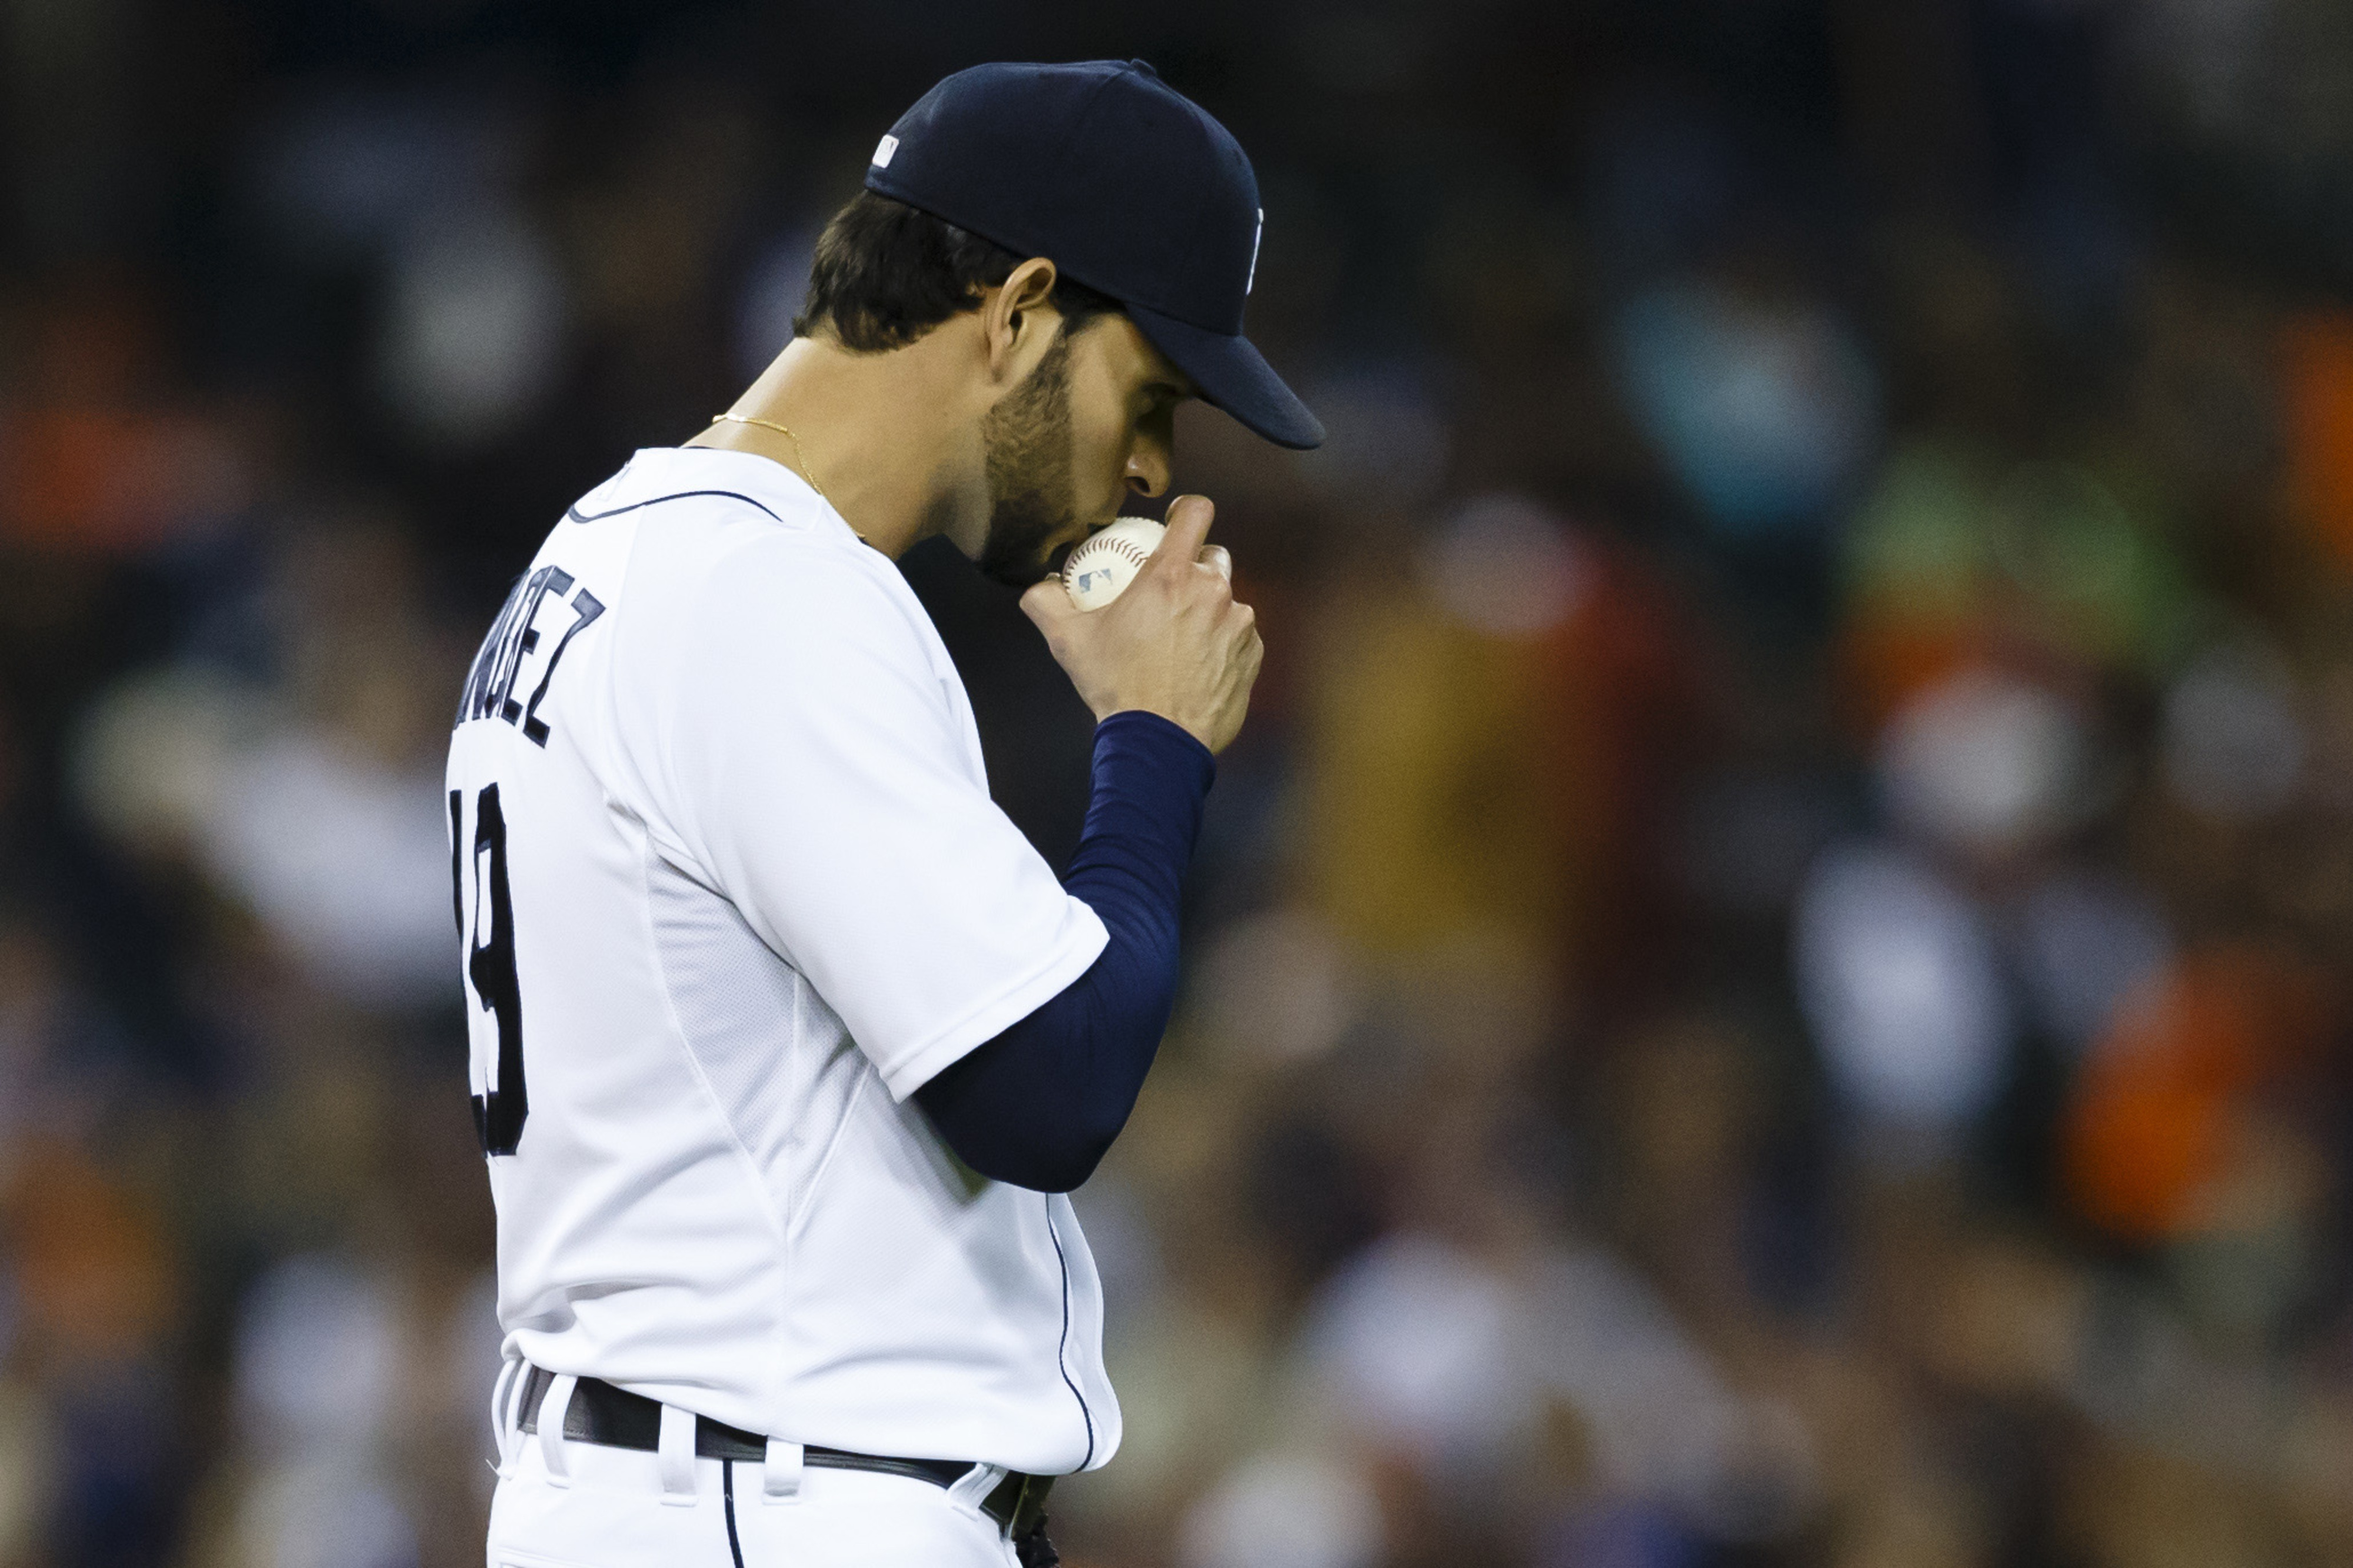 Anibal Sanchez kisses the ball before pitching in the seventh inning on September 26, 2014